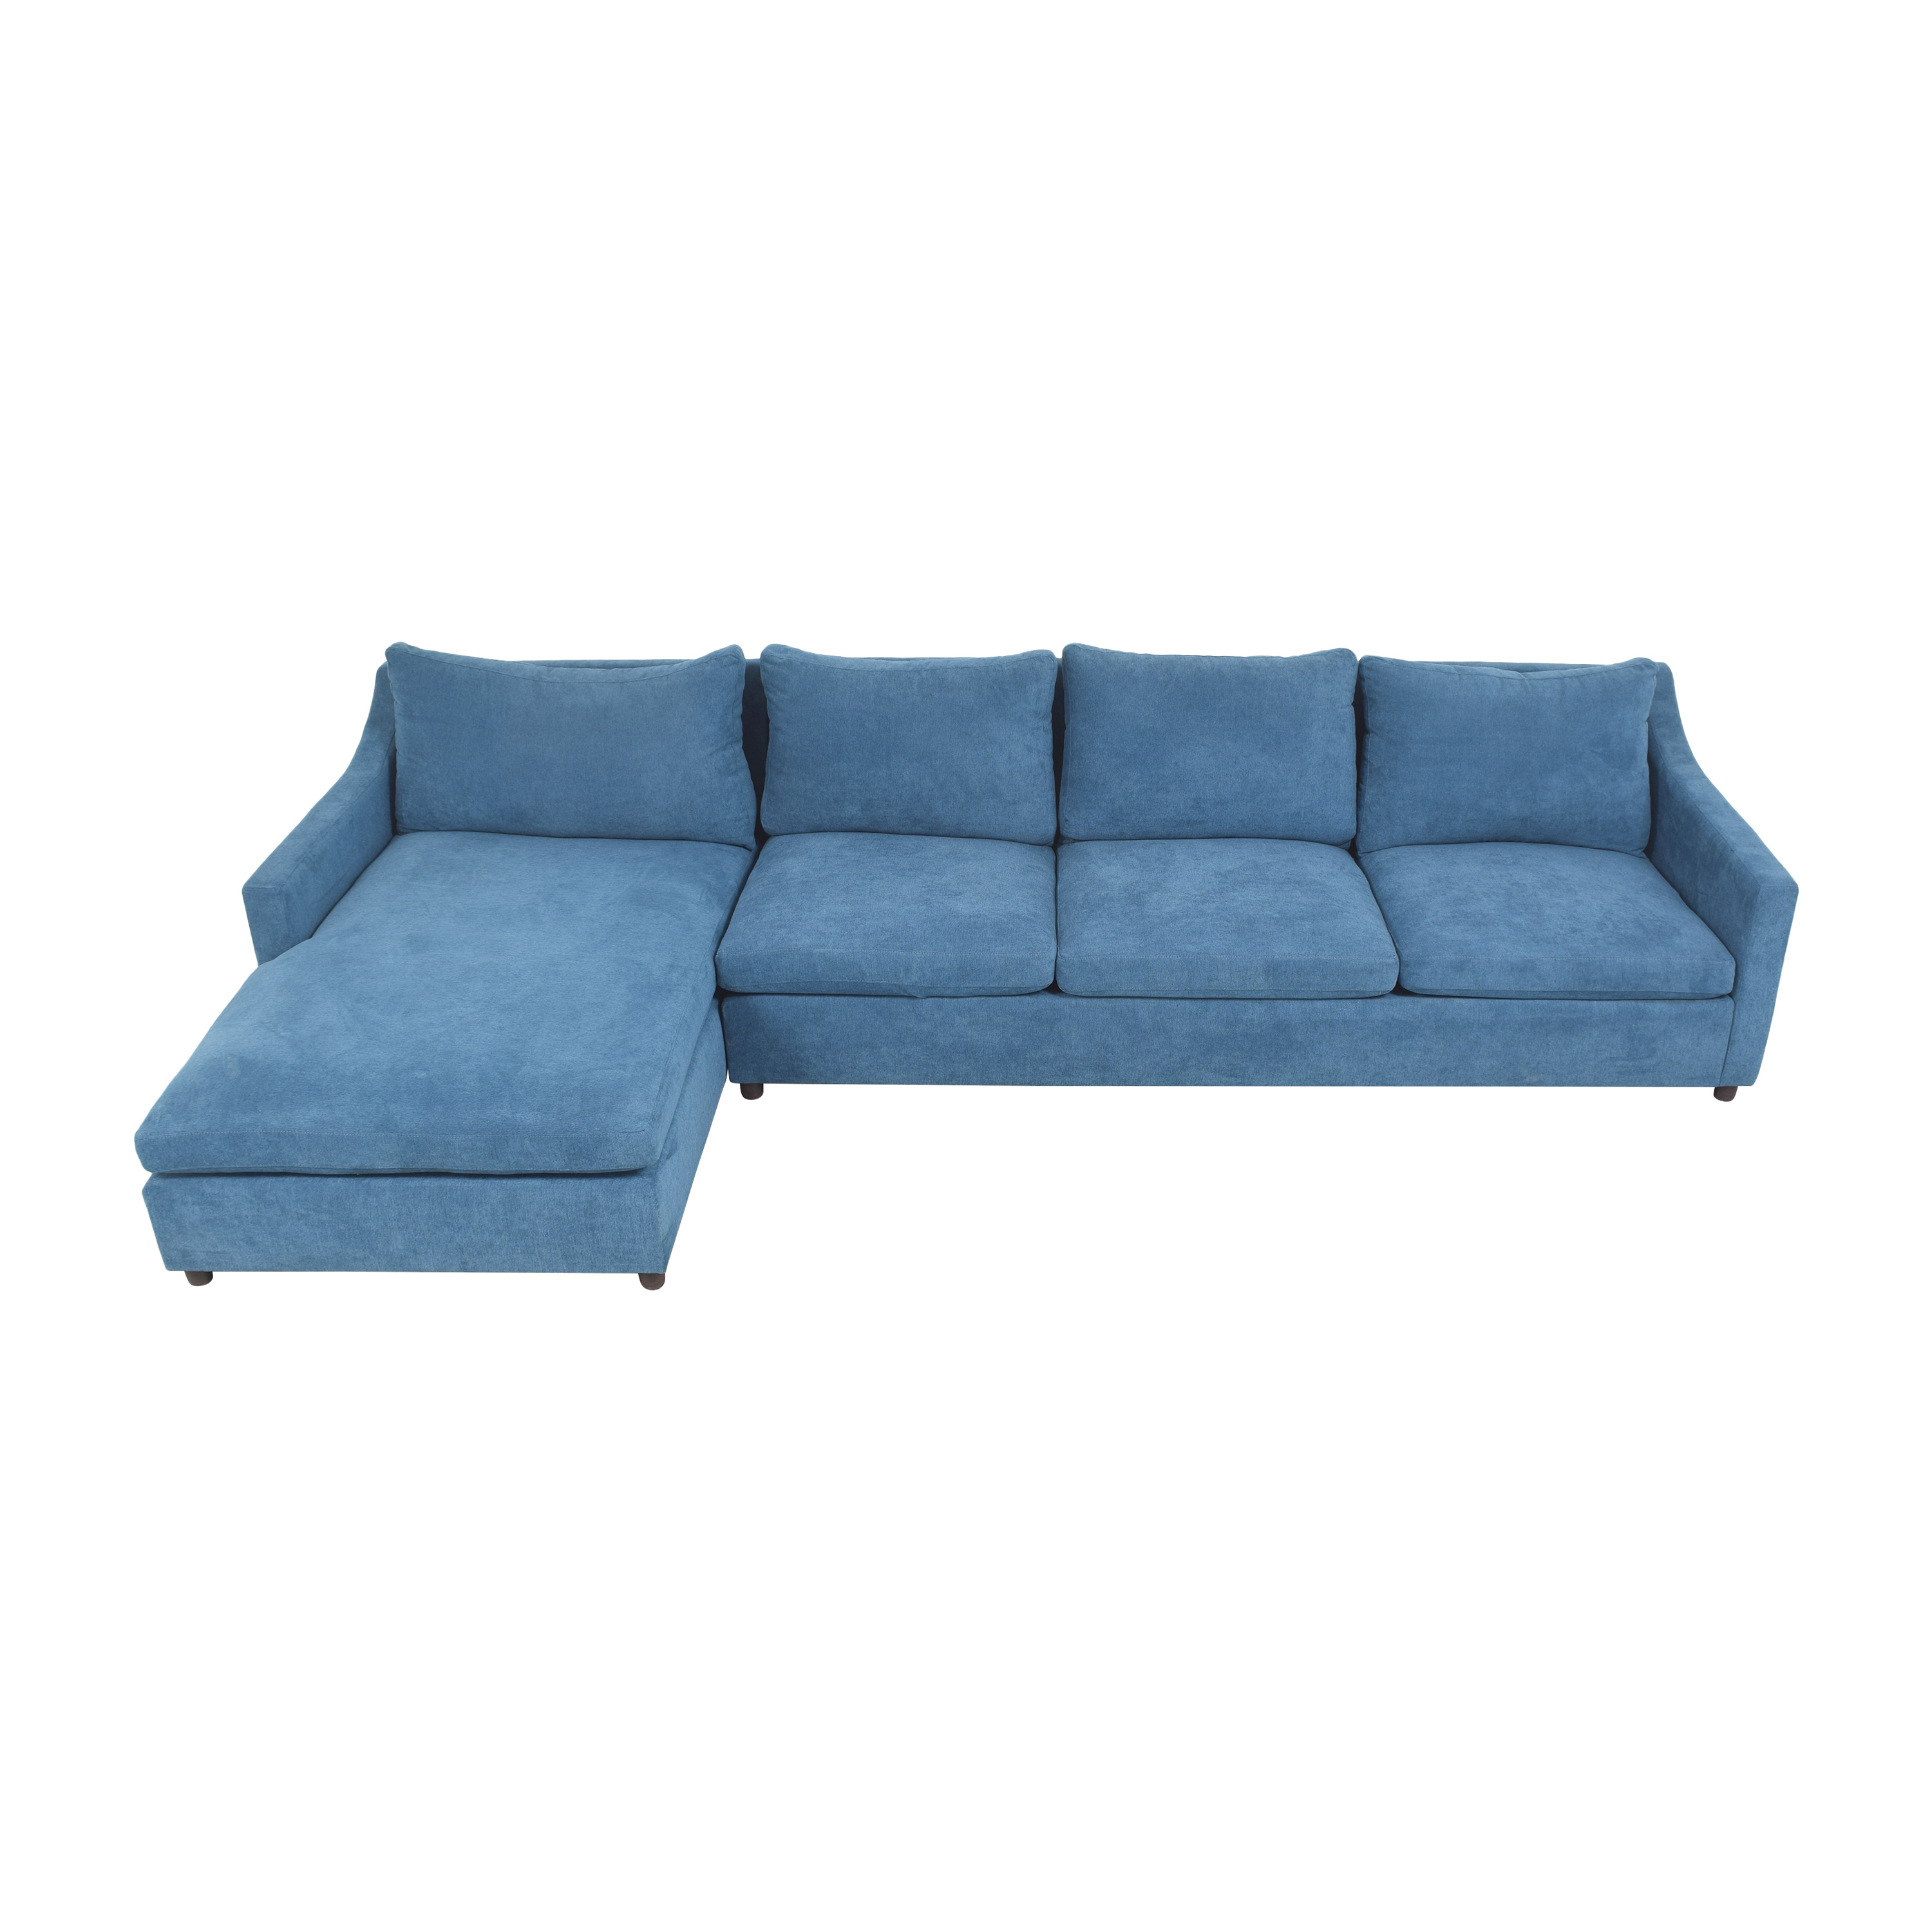 BenchMade Modern Johnny Homemaker Sectional Sofa with Chaise sale